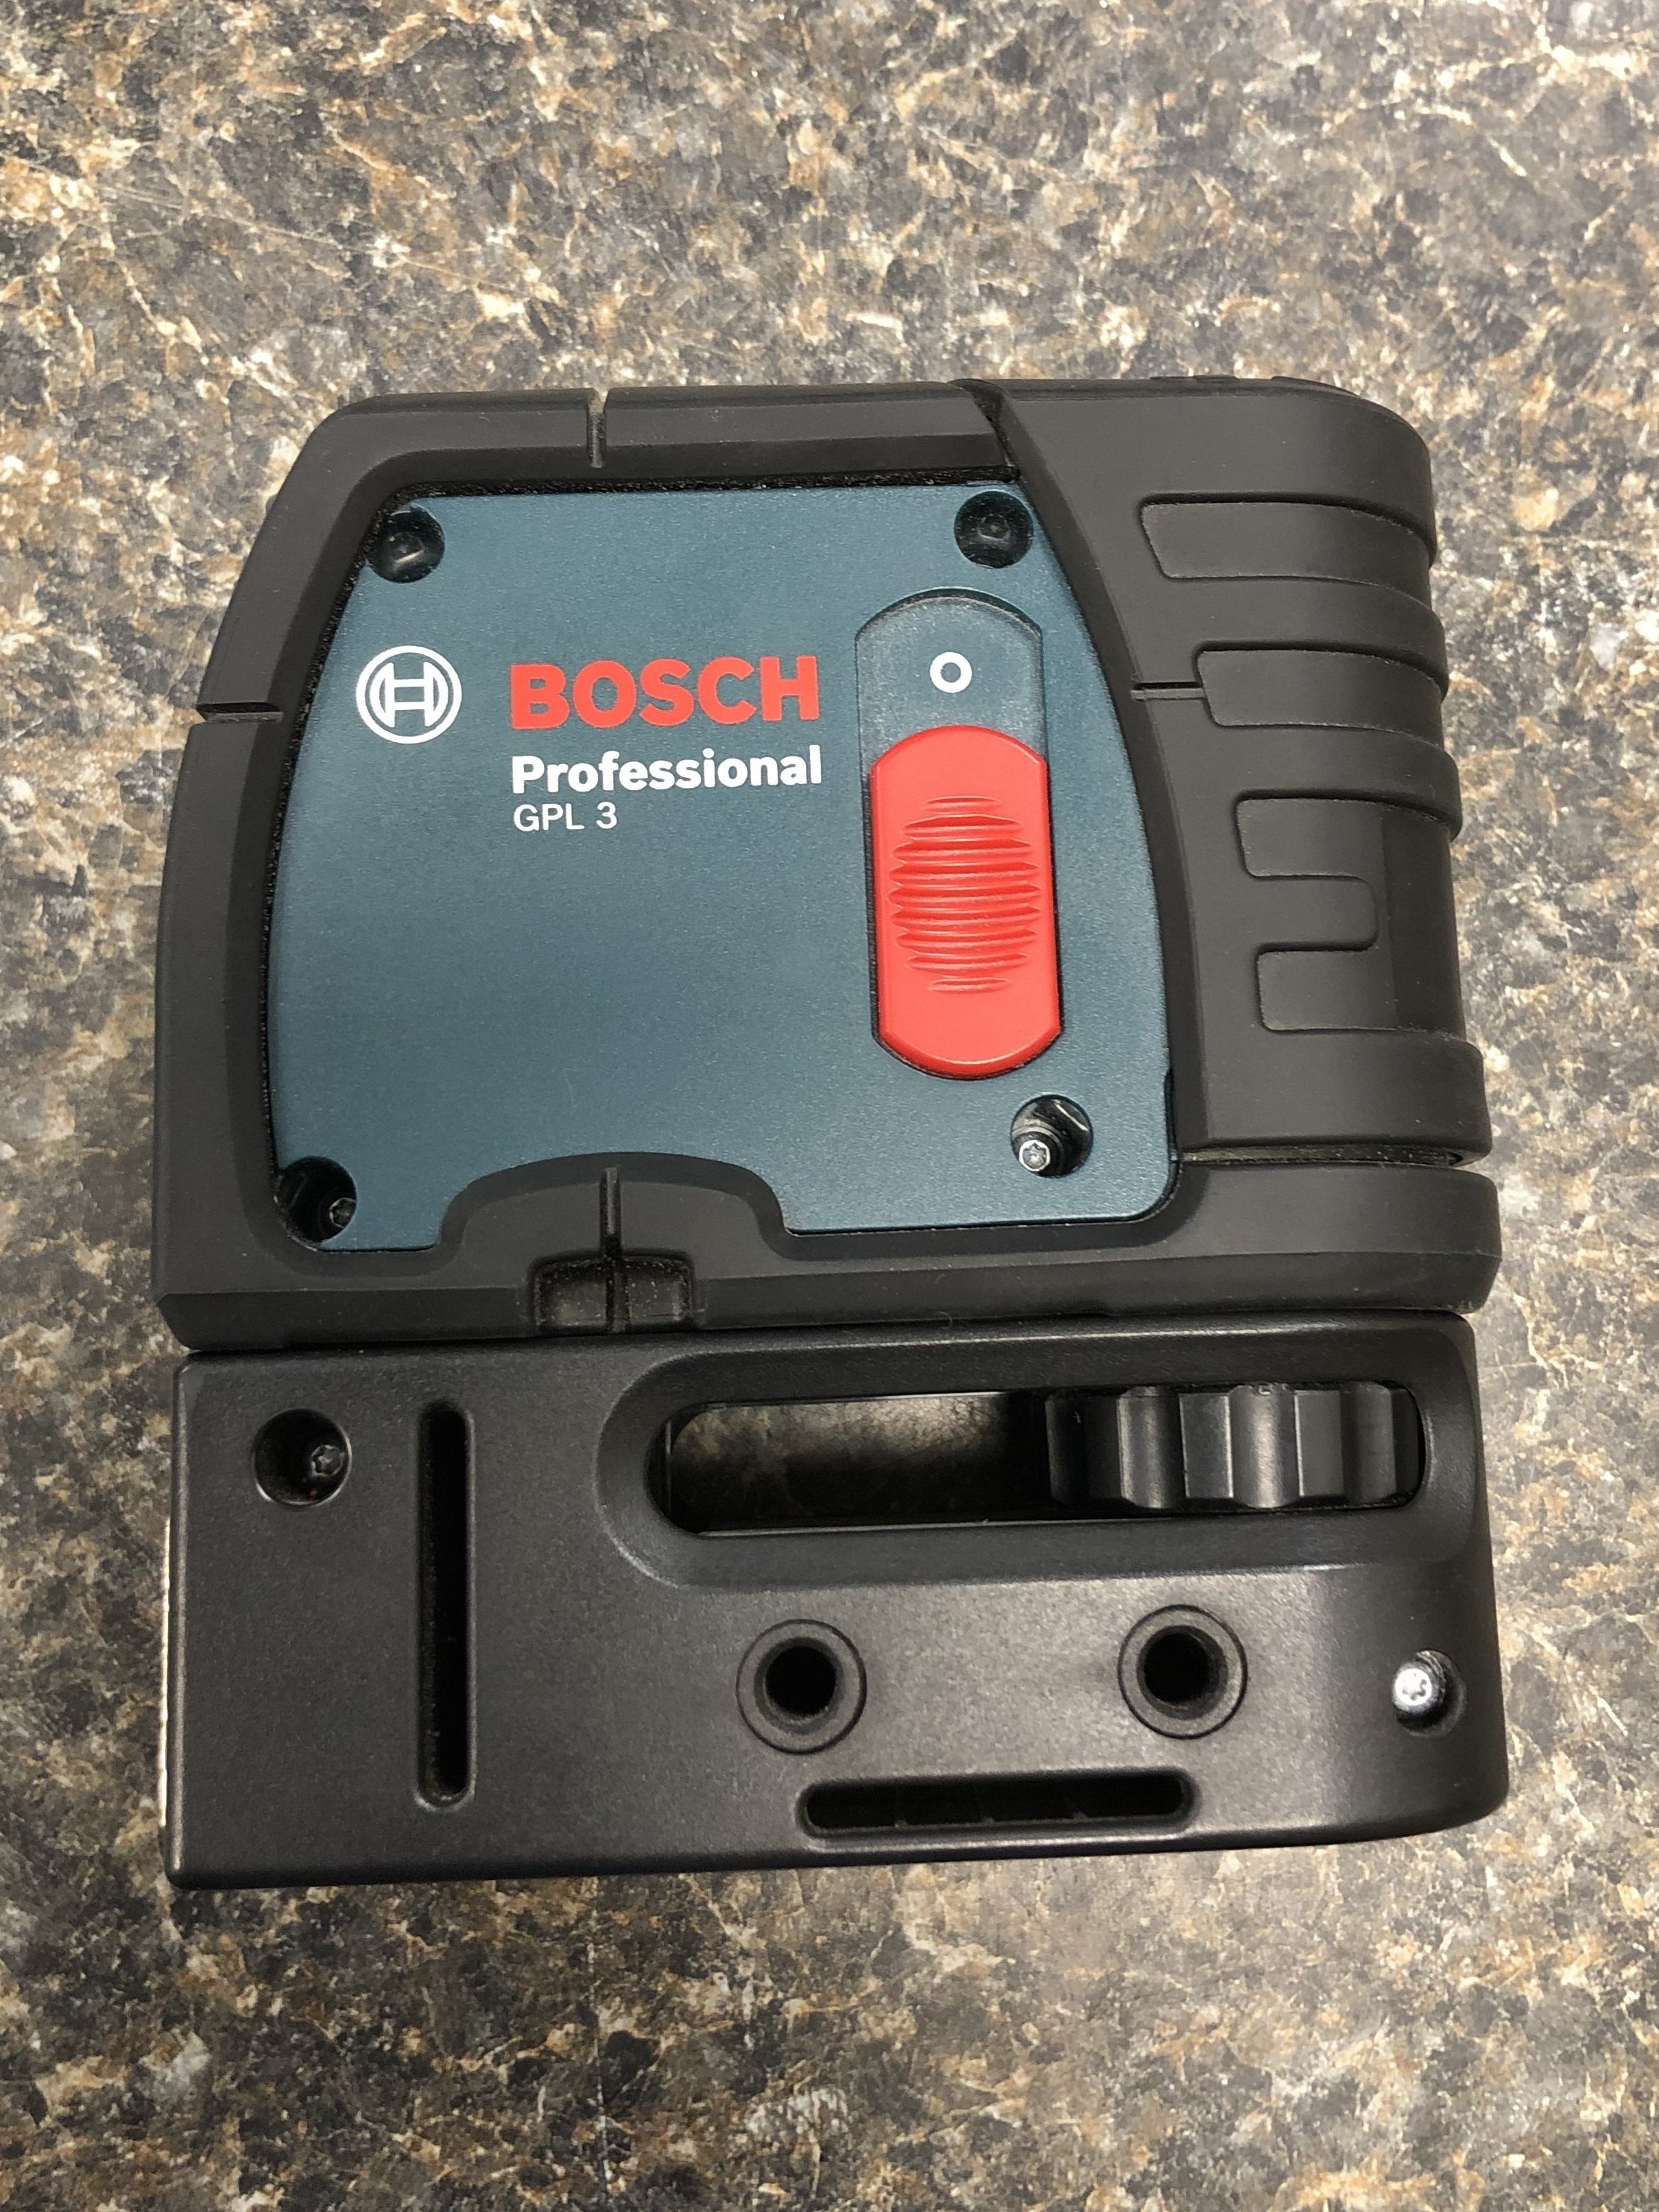 BOSCH 3 Point Self-leveling Alignment Laser with a soft case - PRO. GPL 3